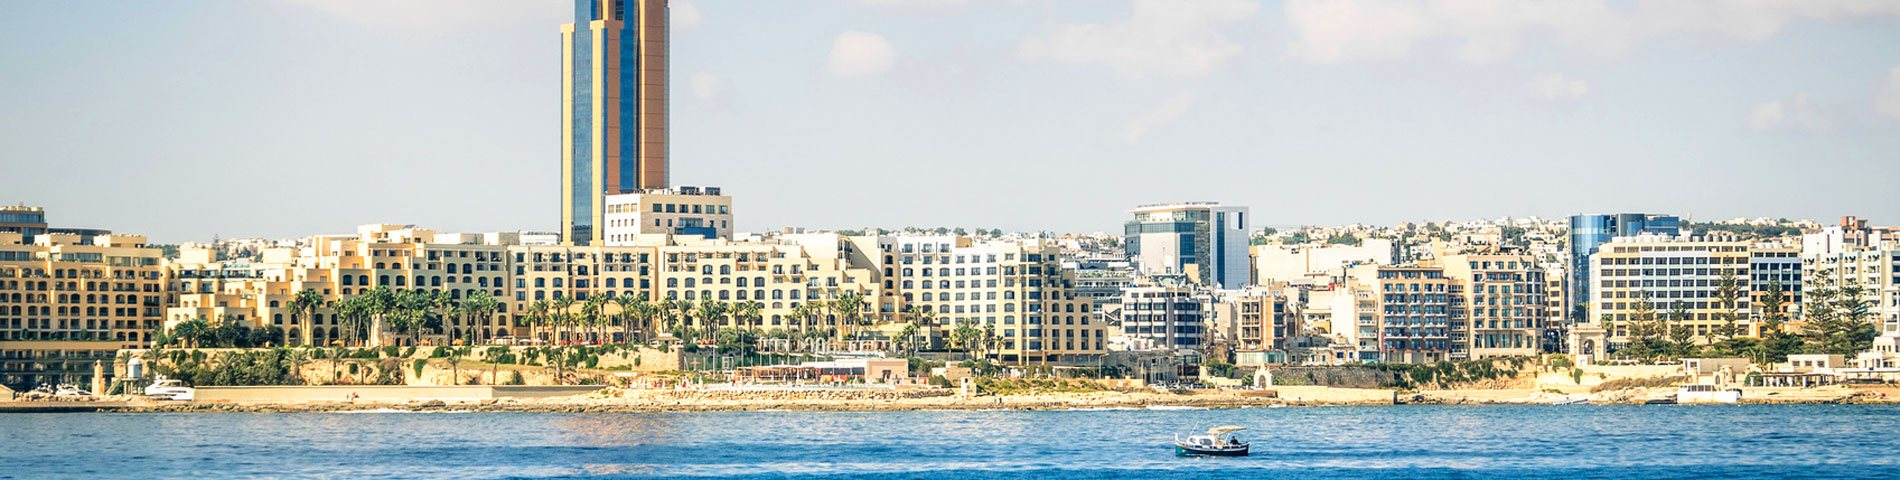 St. Julians